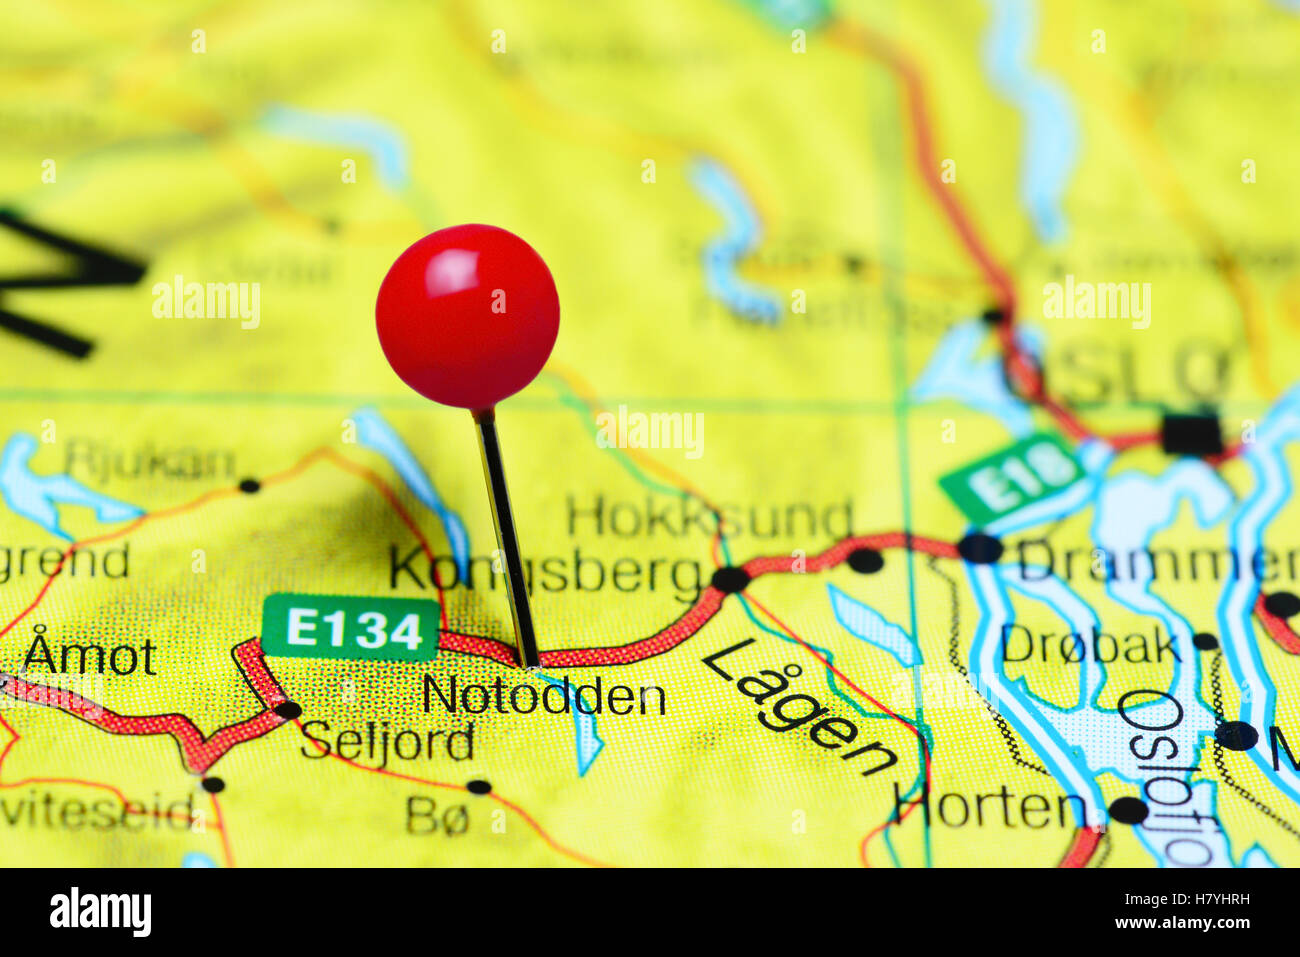 Notodden Stock Photos Notodden Stock Images Alamy